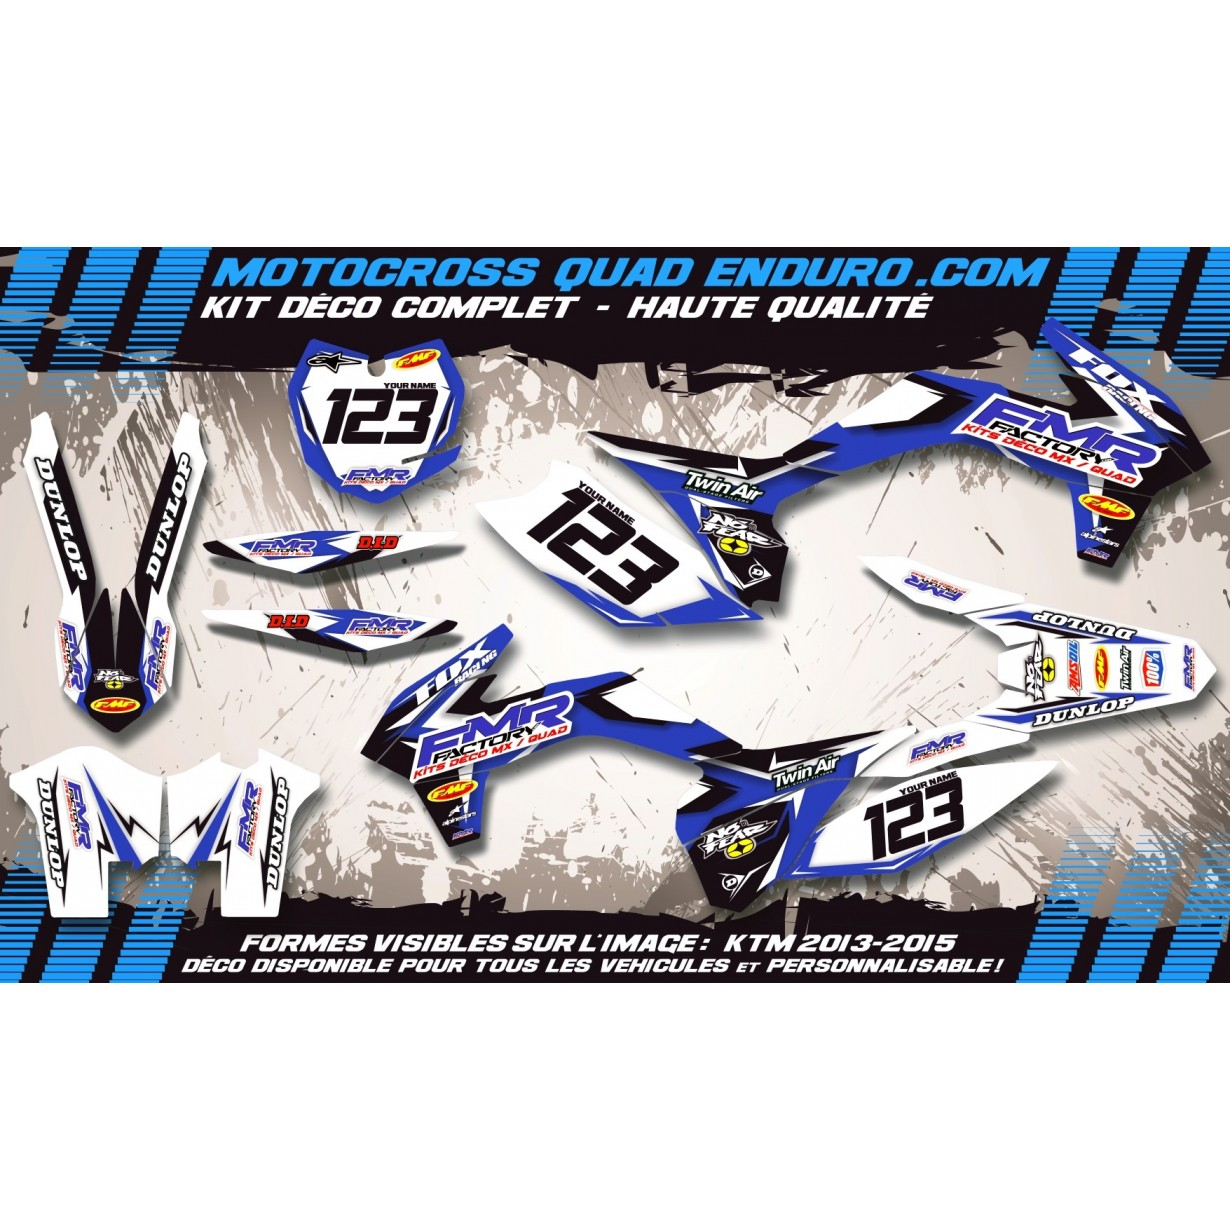 KIT DÉCO Perso 350 RAPTOR Quad Fmr Factory MA13E